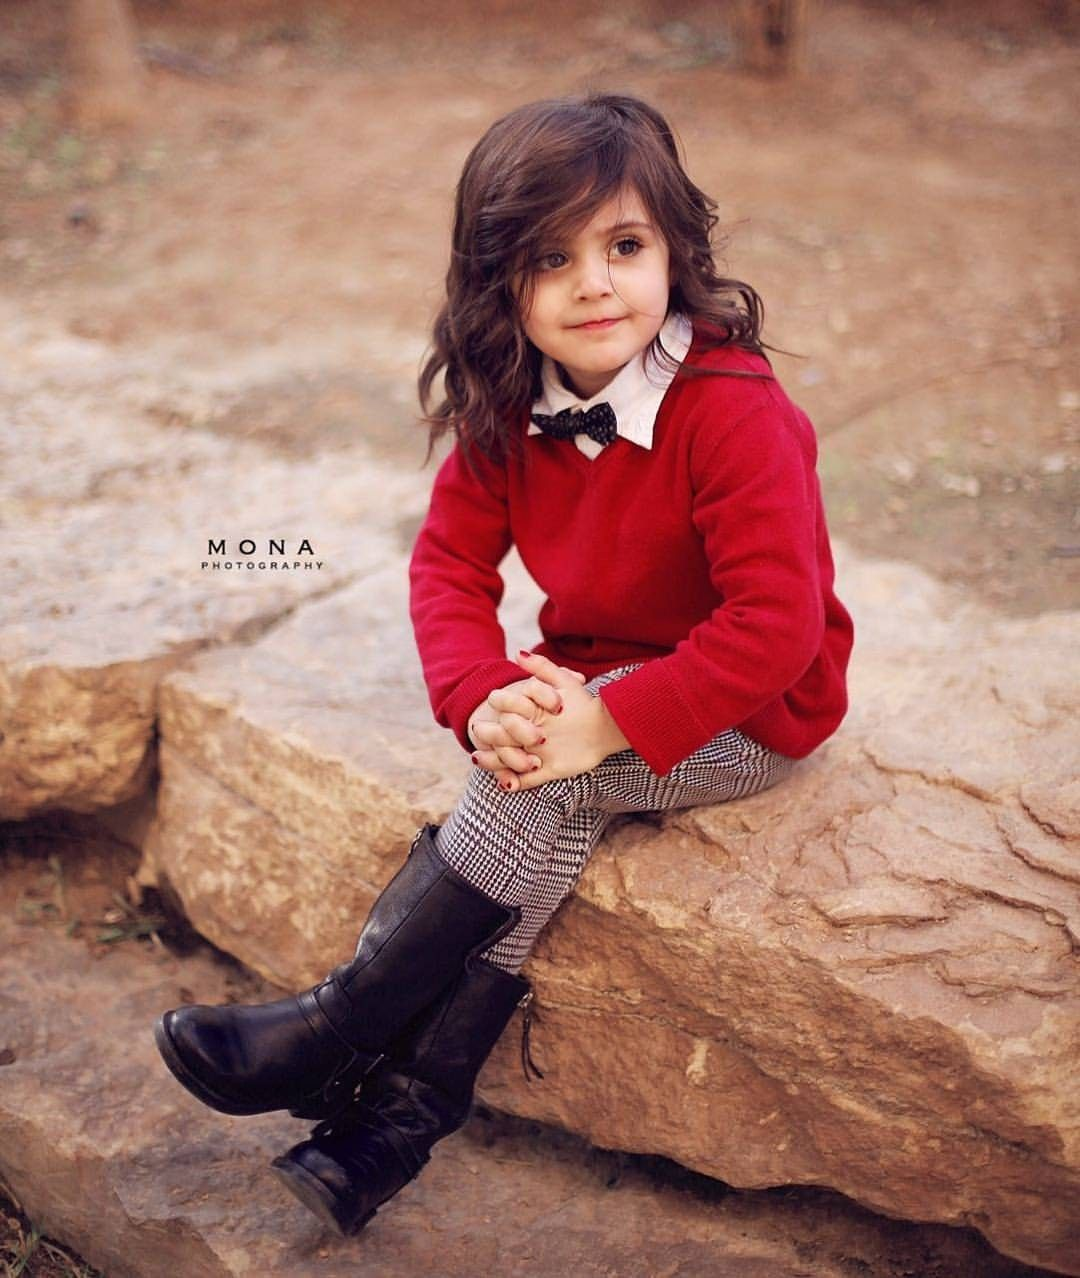 Pin By جود On غادة السحيم Cute Baby Girl Images Cute Baby Girl Baby Girl Images